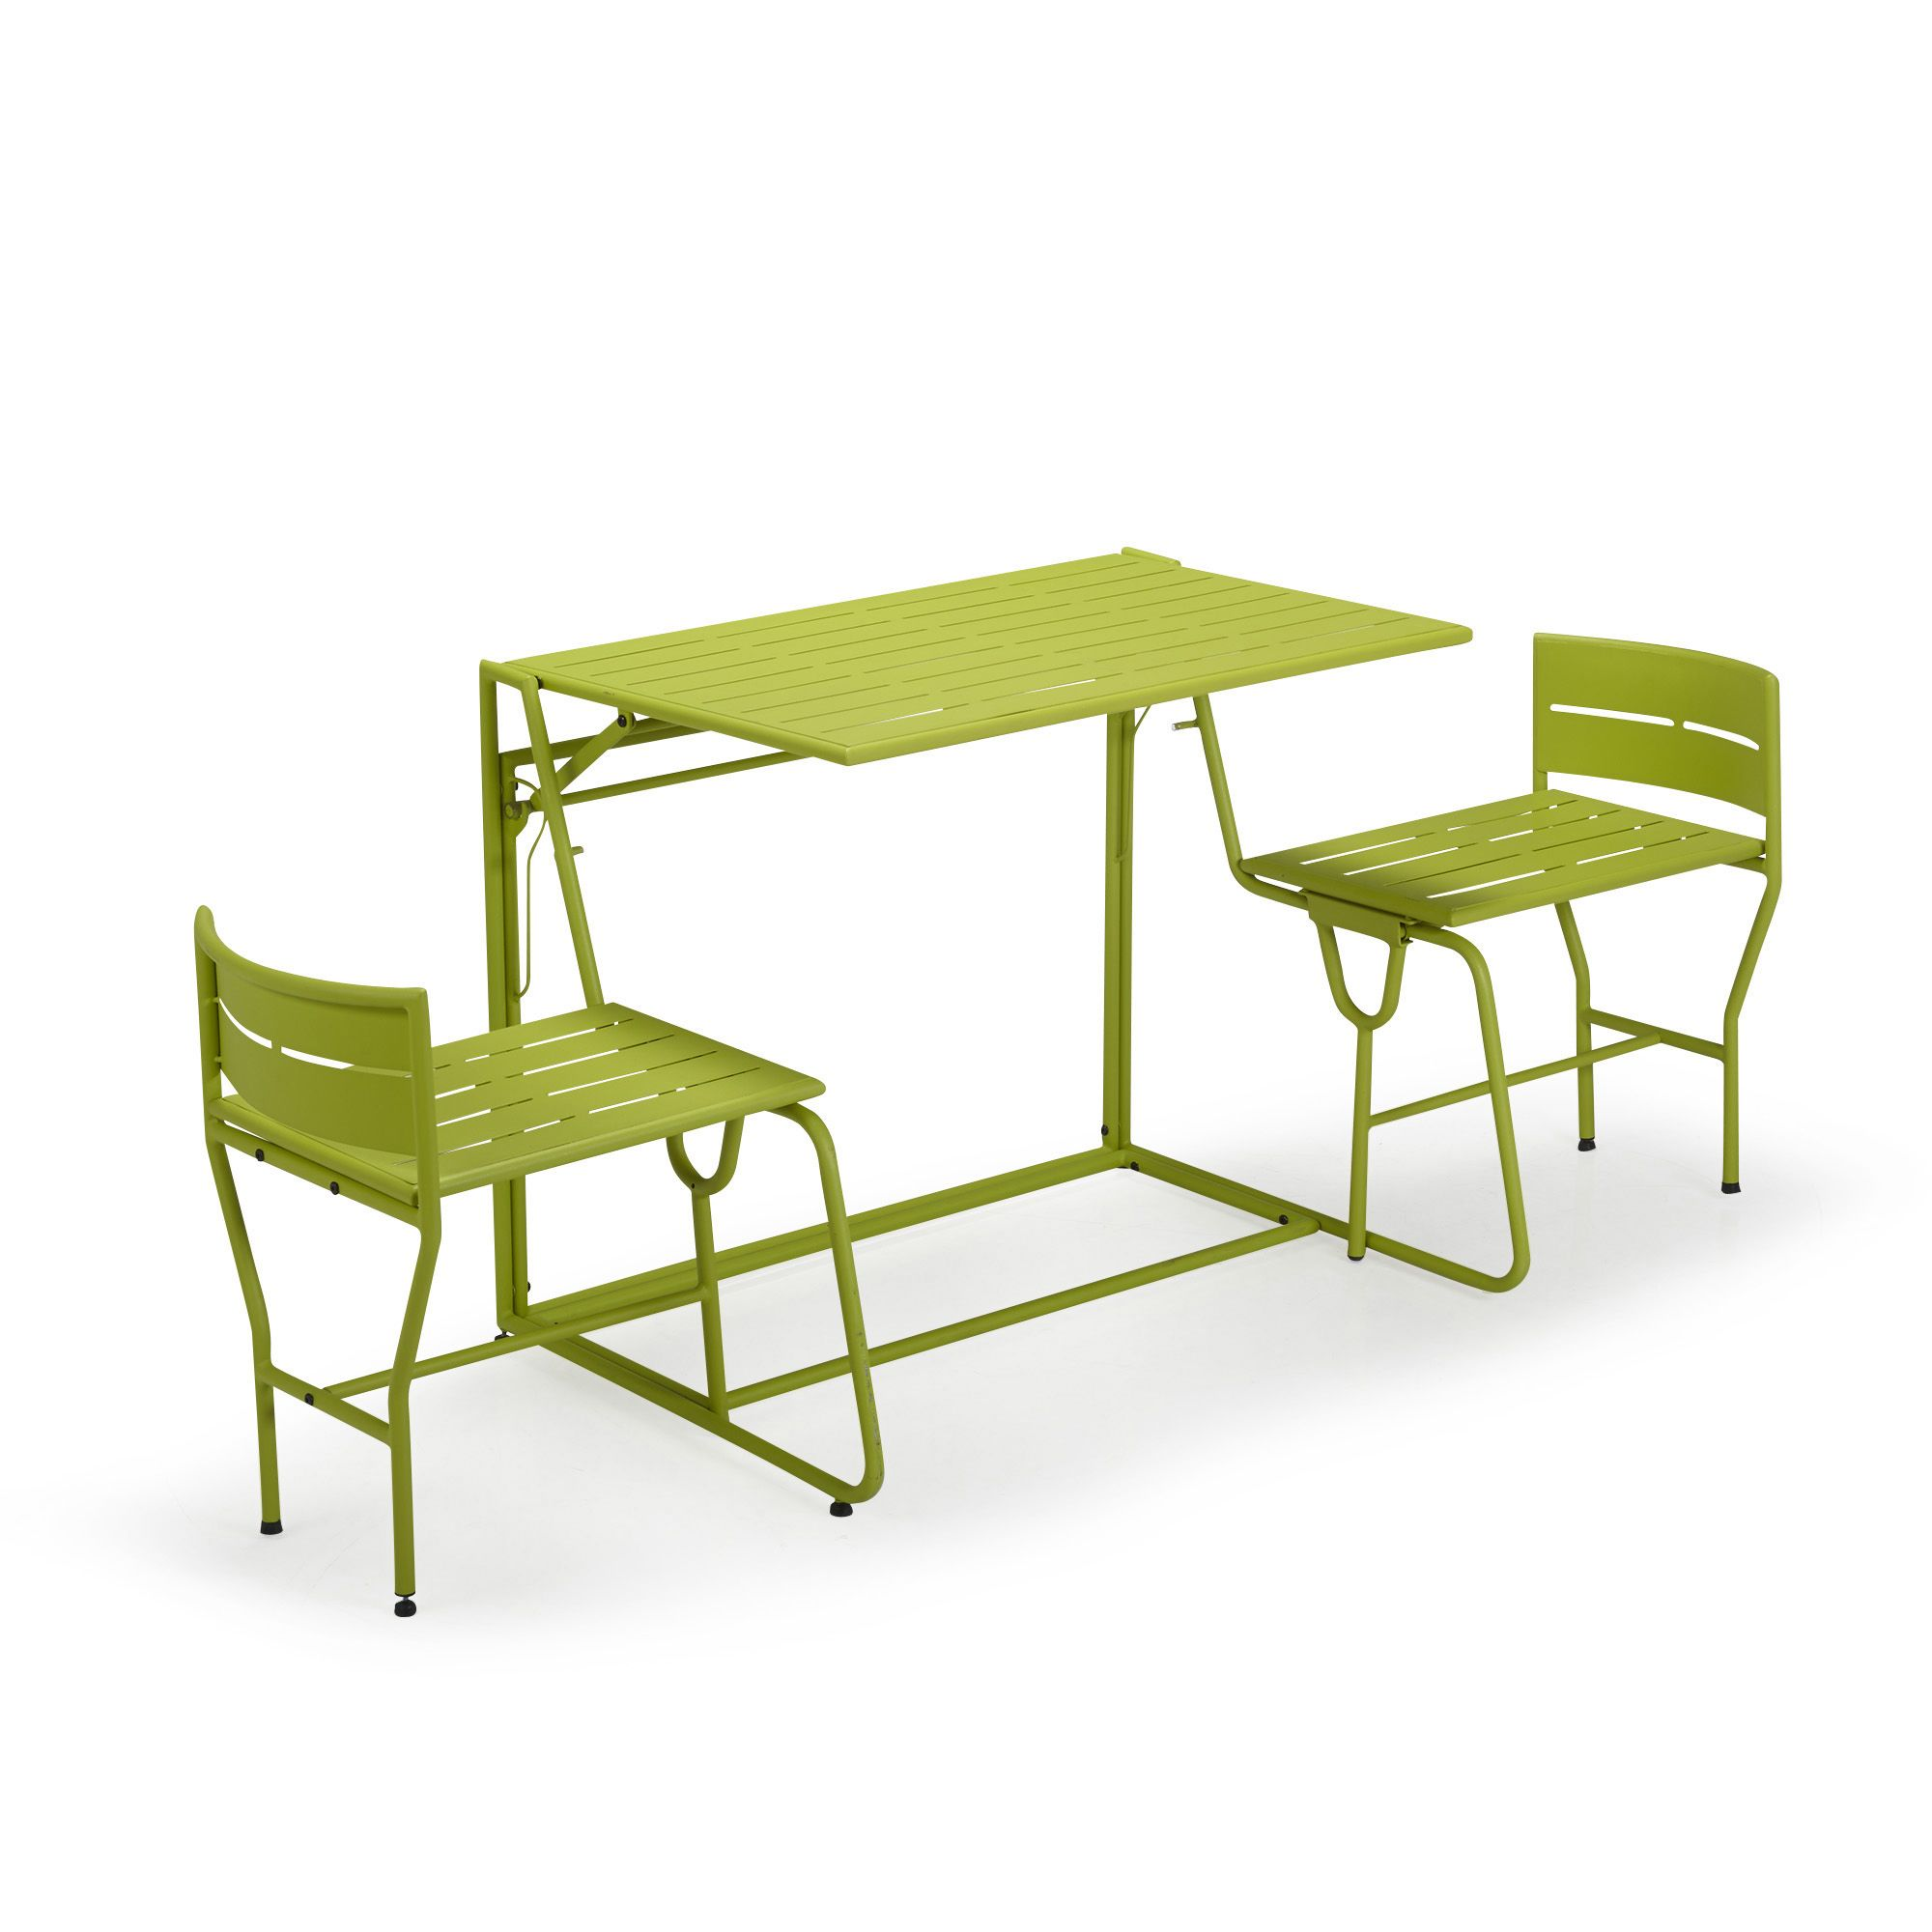 Picnic le salon de jardin balcon transformable 2 en 1 - Alinea salon ...